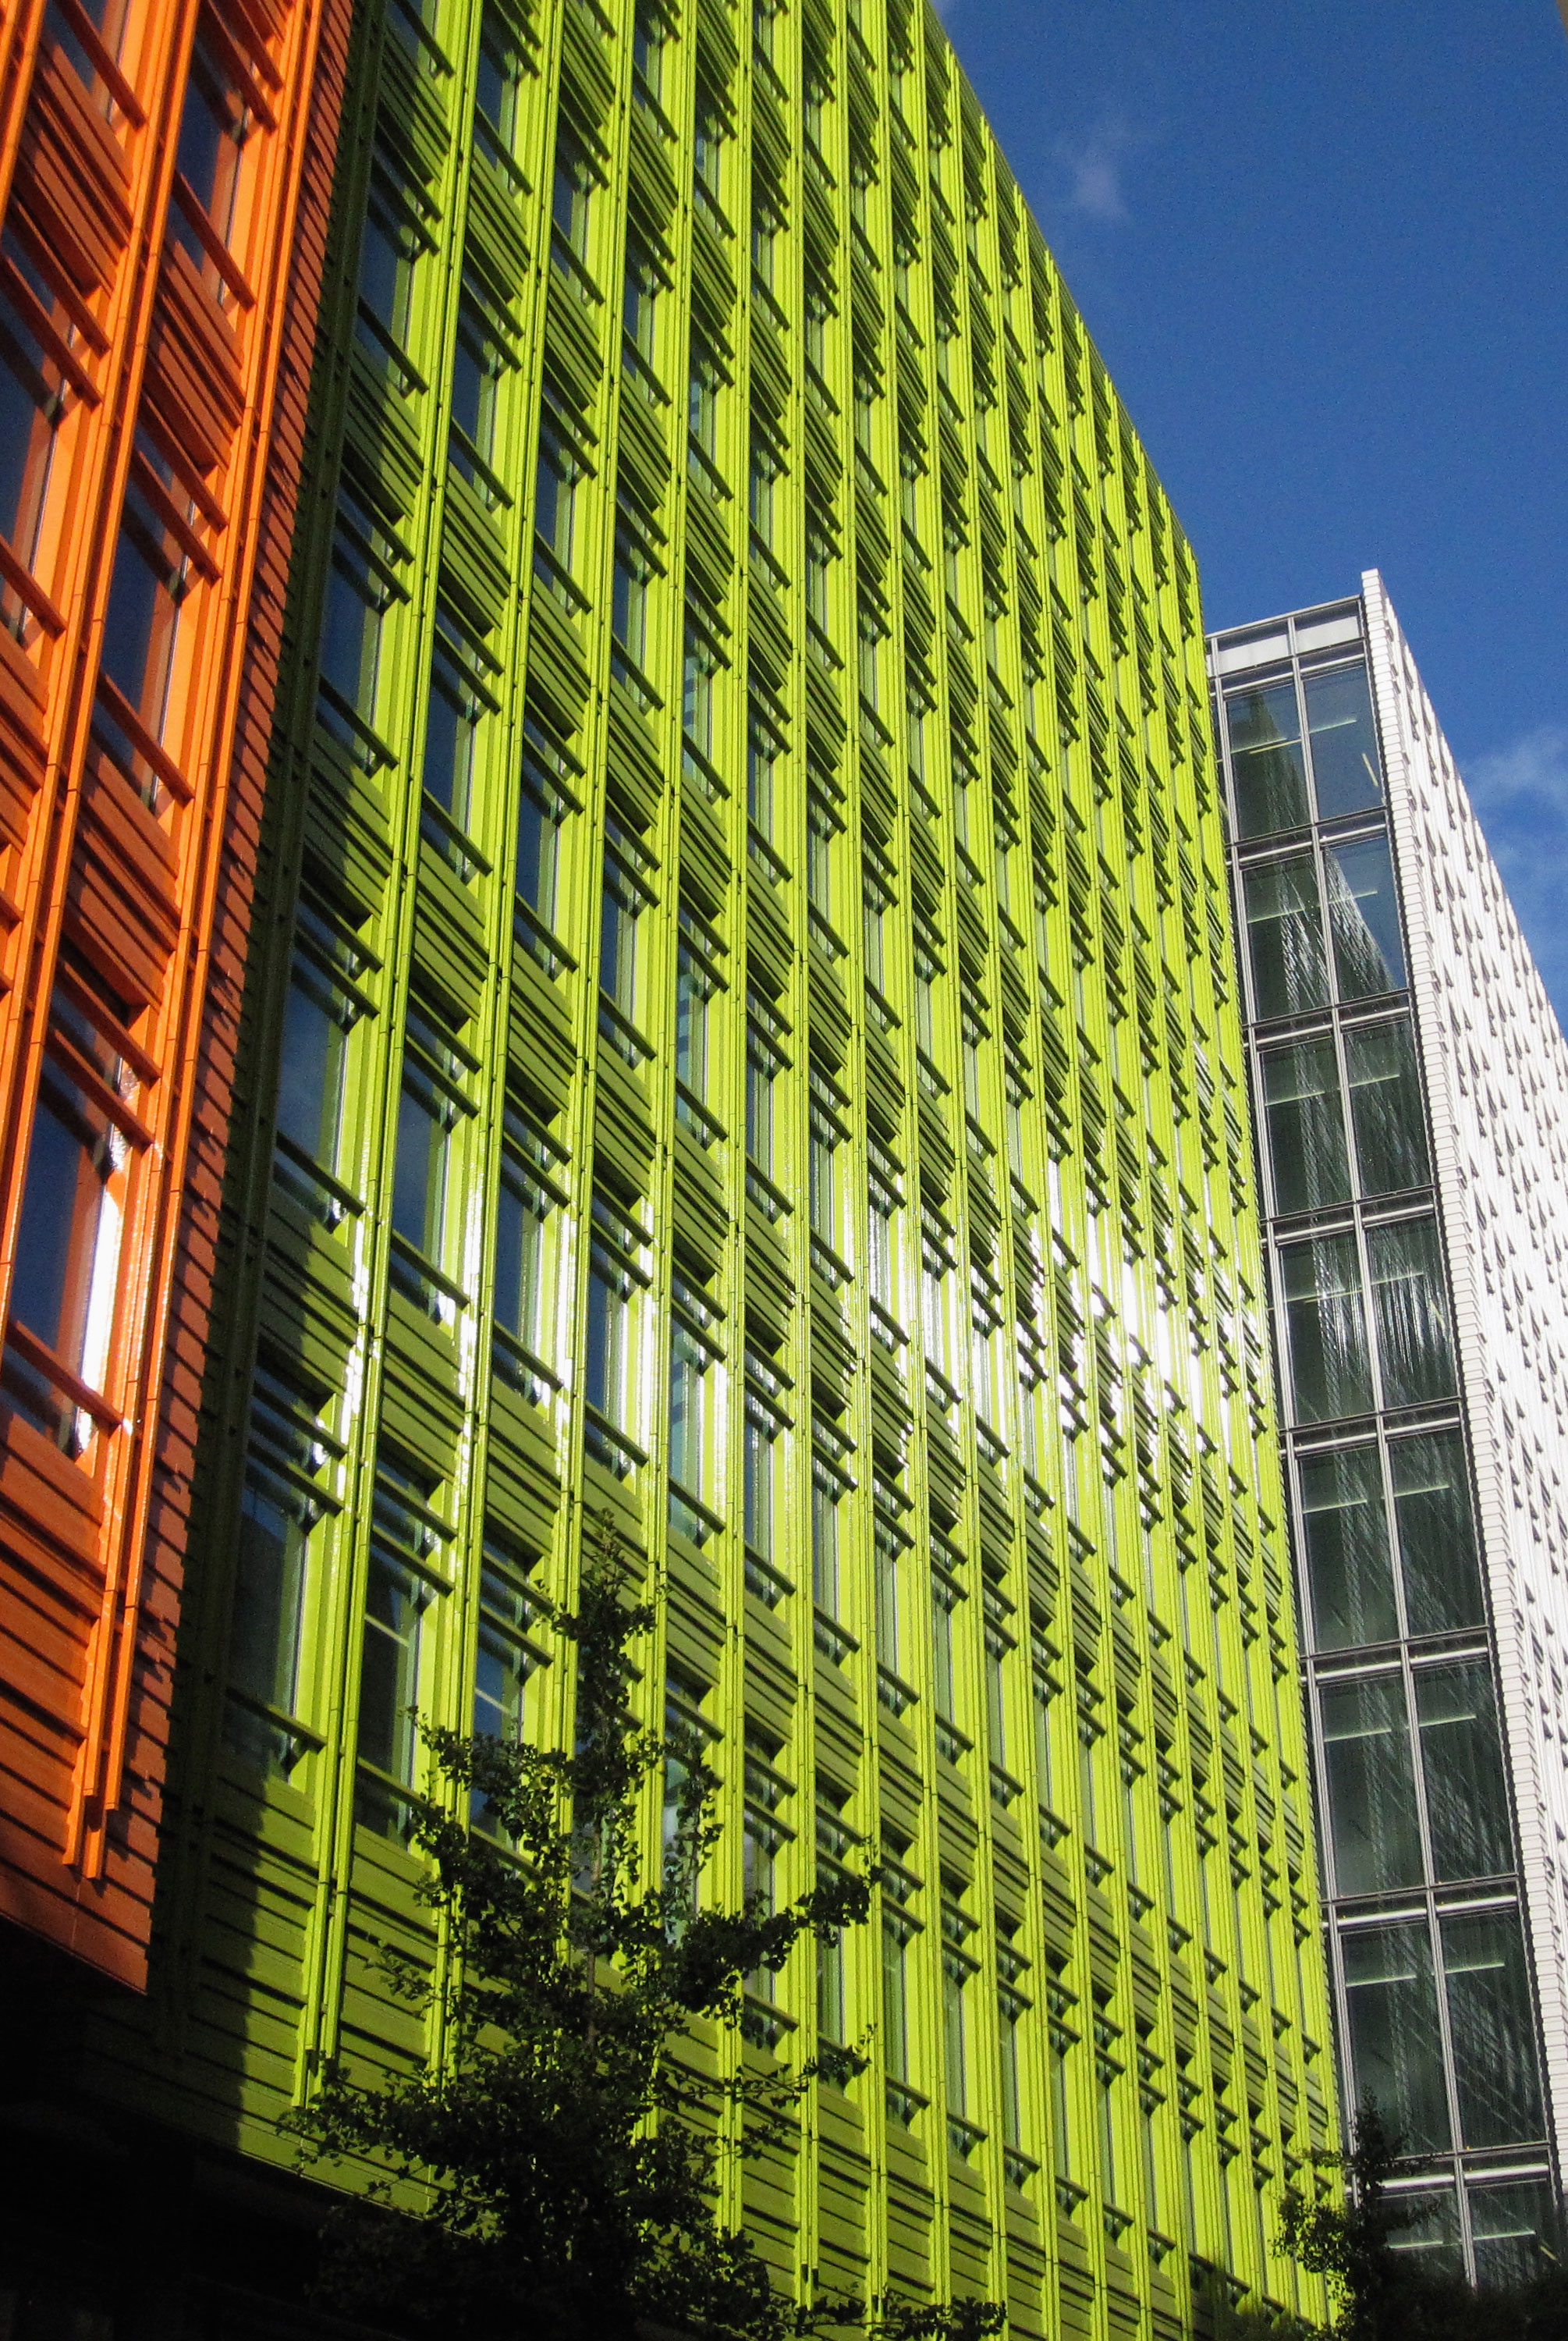 Colorful buildings in London